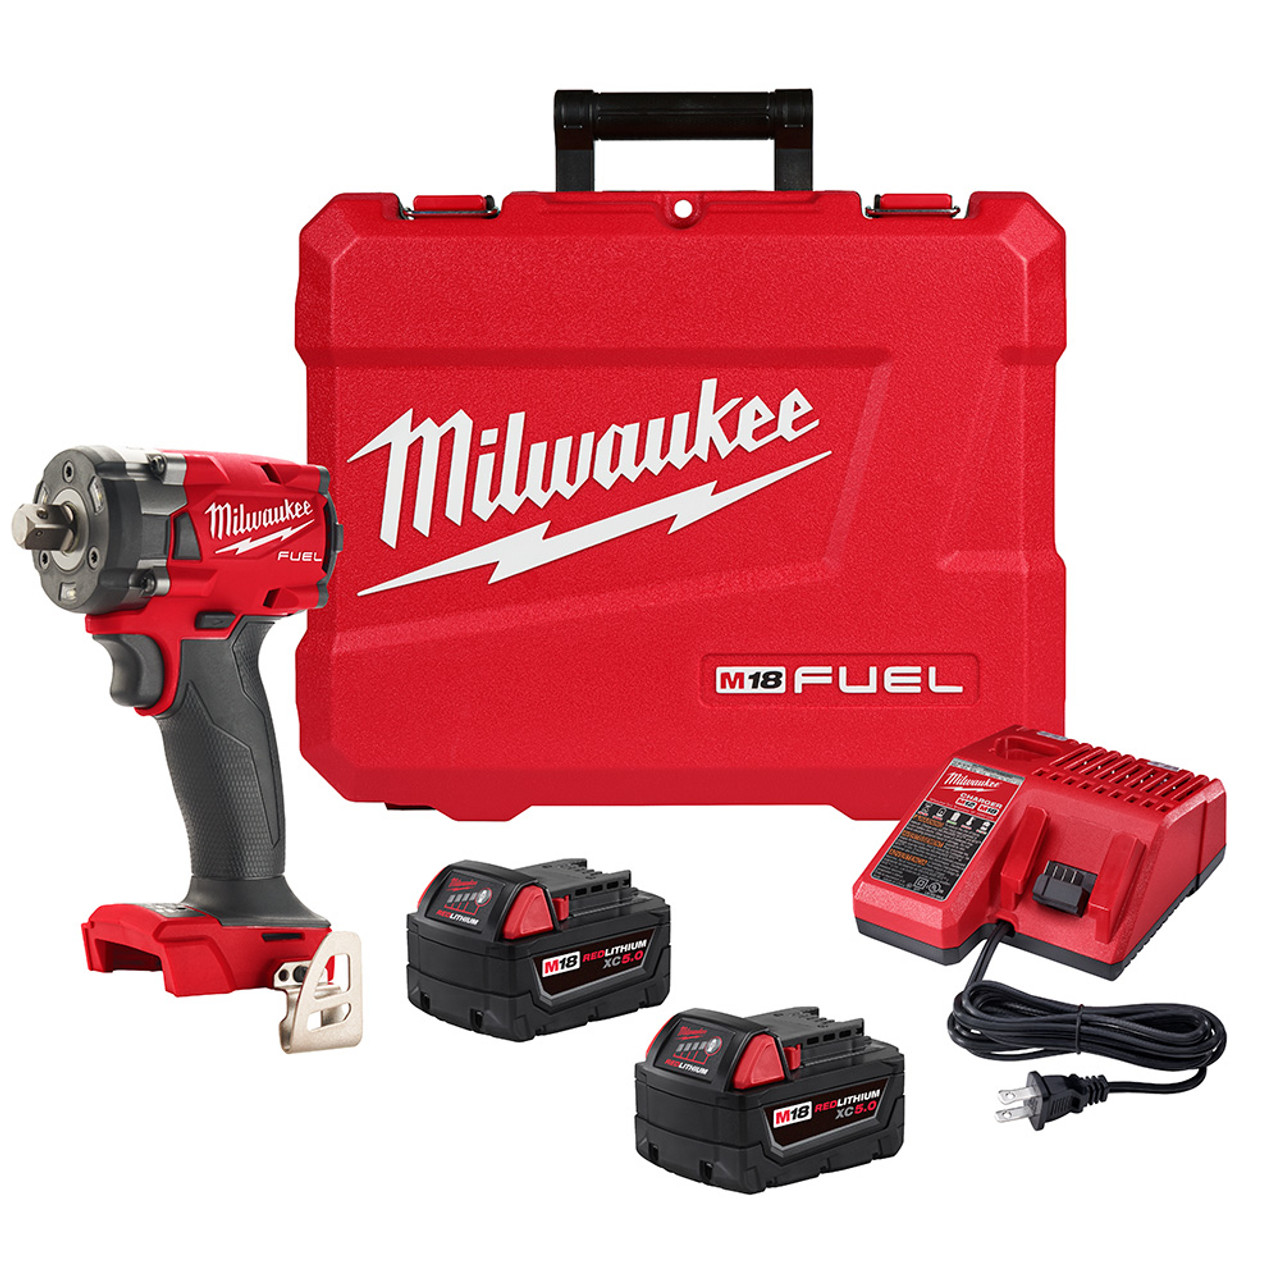 Milwaukee 2855P-22 M18 FUEL 1/2 Compact Impact Wrench w/ Pin Detent Kit